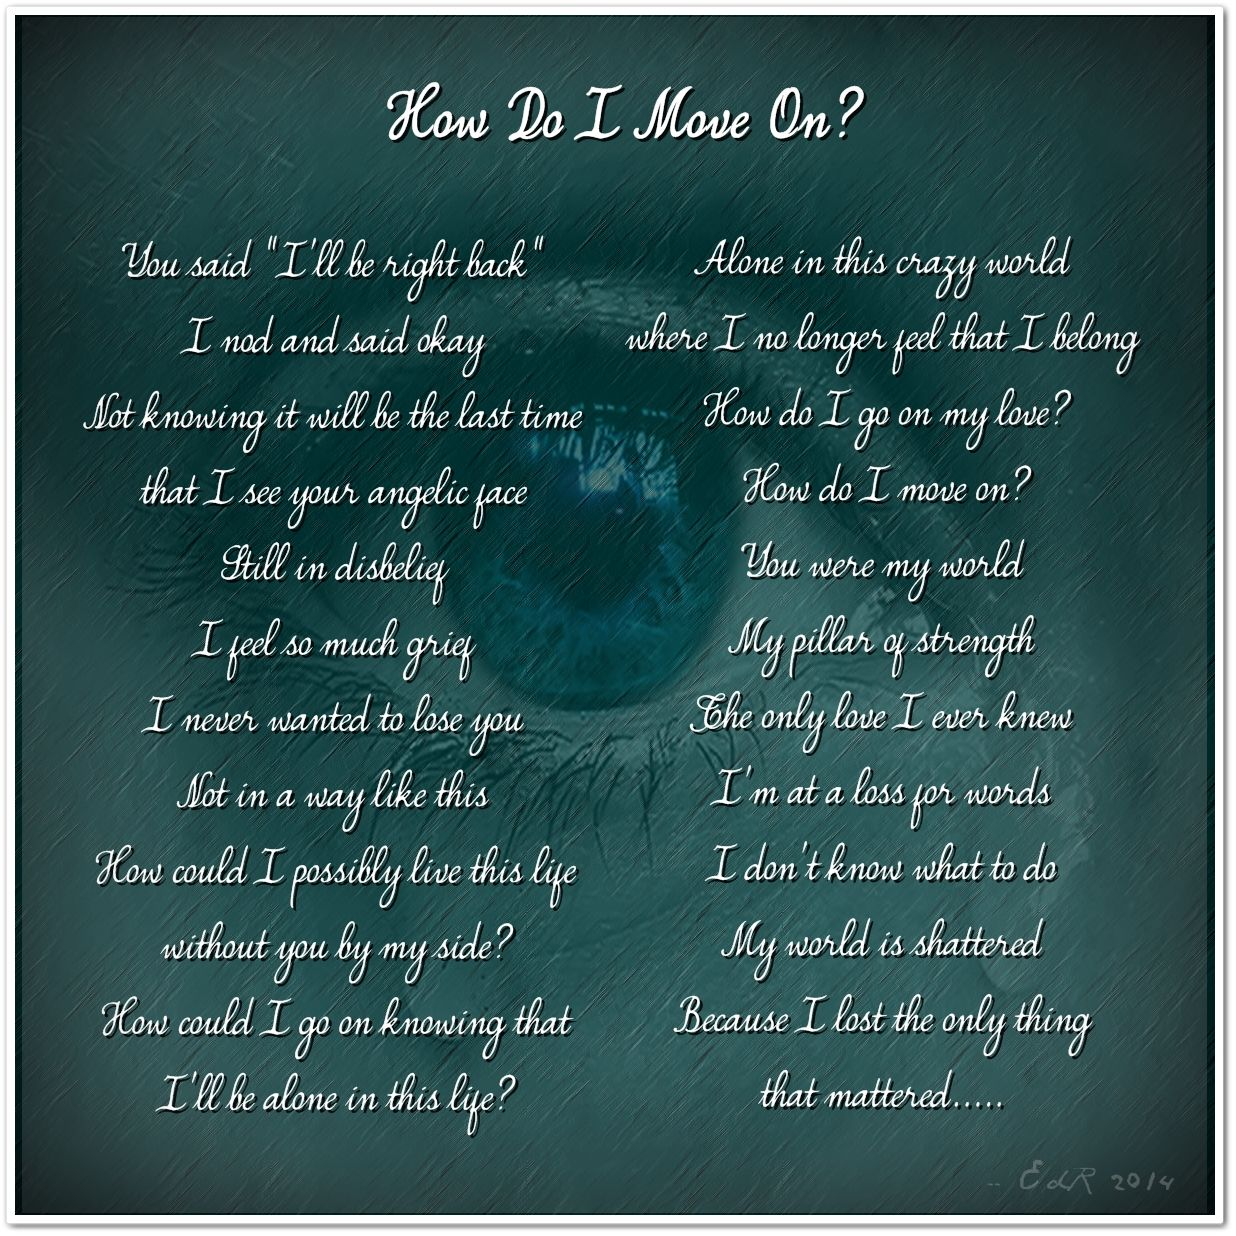 Poetry: How Do I Move On?